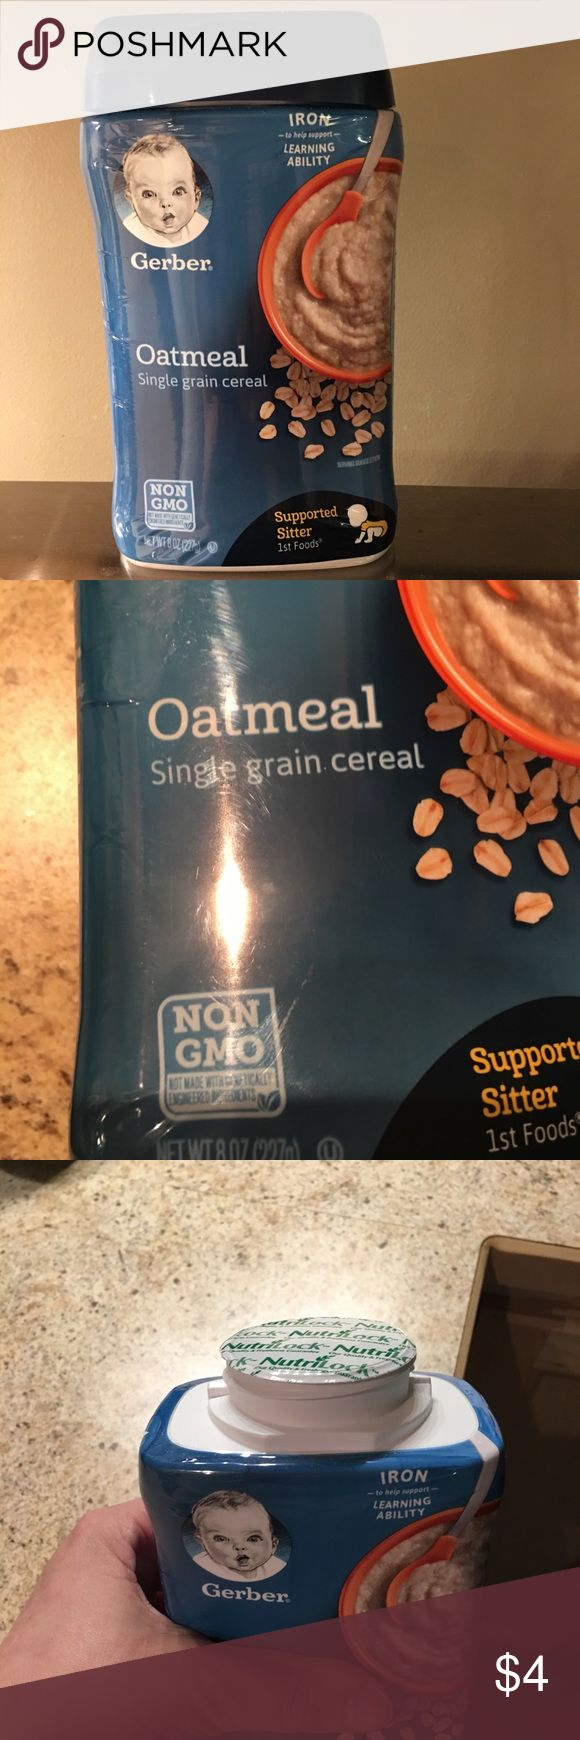 Gerber Oatmeal Infant Cereal Gerber 1st Foods Supported Sitter Oatmeal Single grain cereal. Brand new with the seal still intact. 8 oz container. Husband bought instead of rice and not able to return or exchange. Expires December 2018 Gerber Other